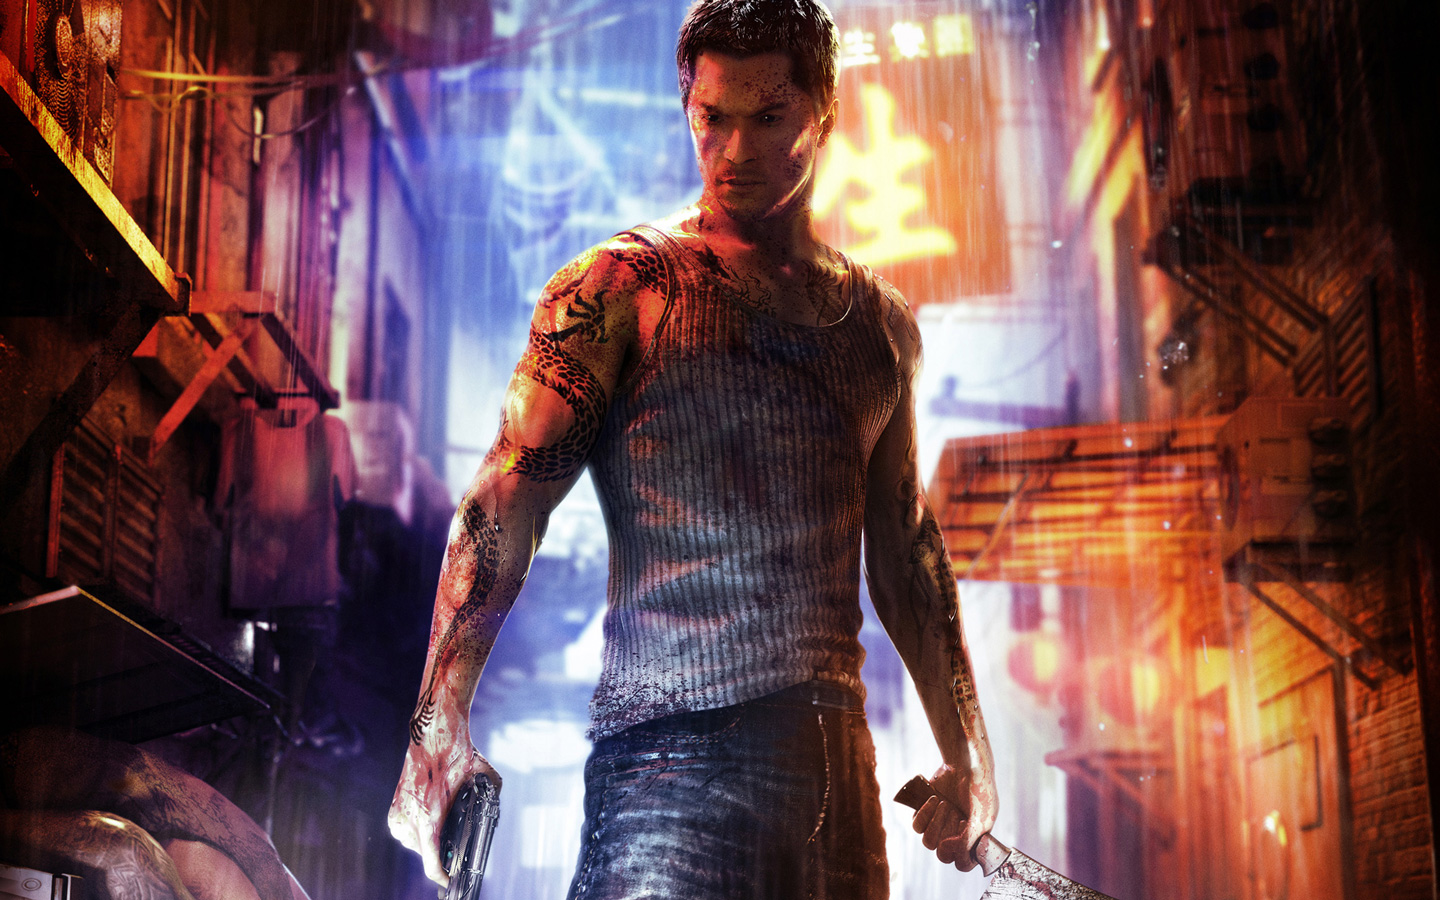 Sleeping Dogs: Thoughts on the game